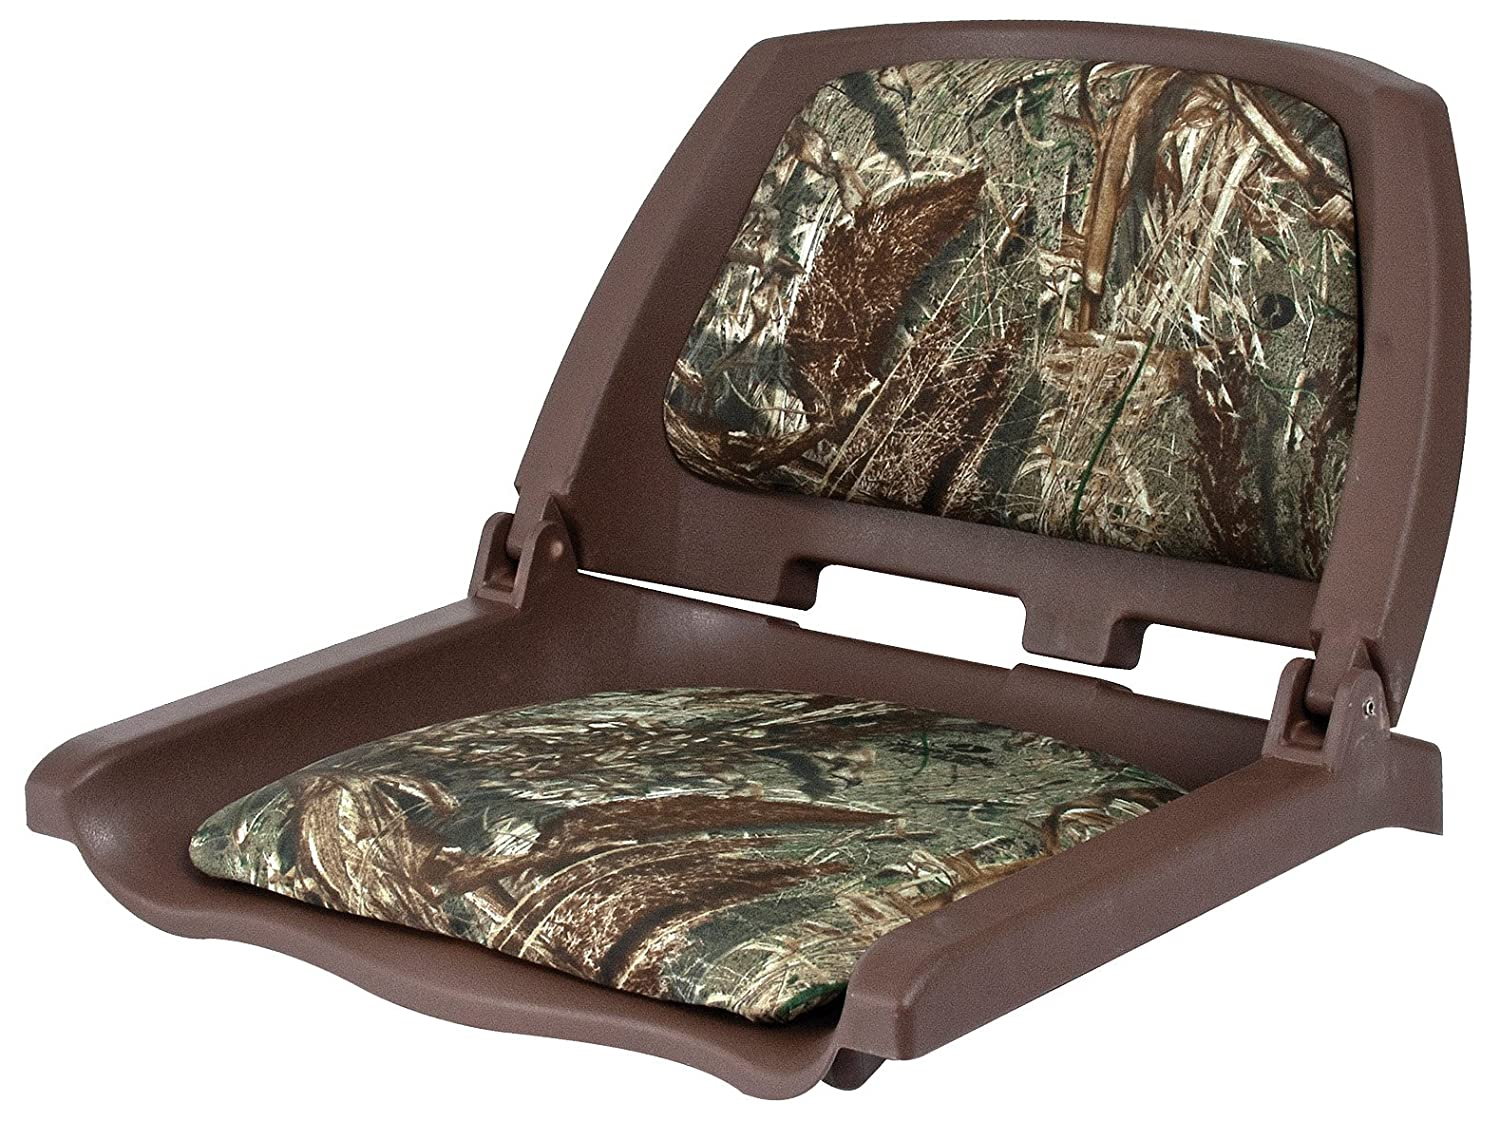 Camo Boat Bench Seat Cushions Molded Folddown Boat Seat With Clamp A Toyota Tacoma Front